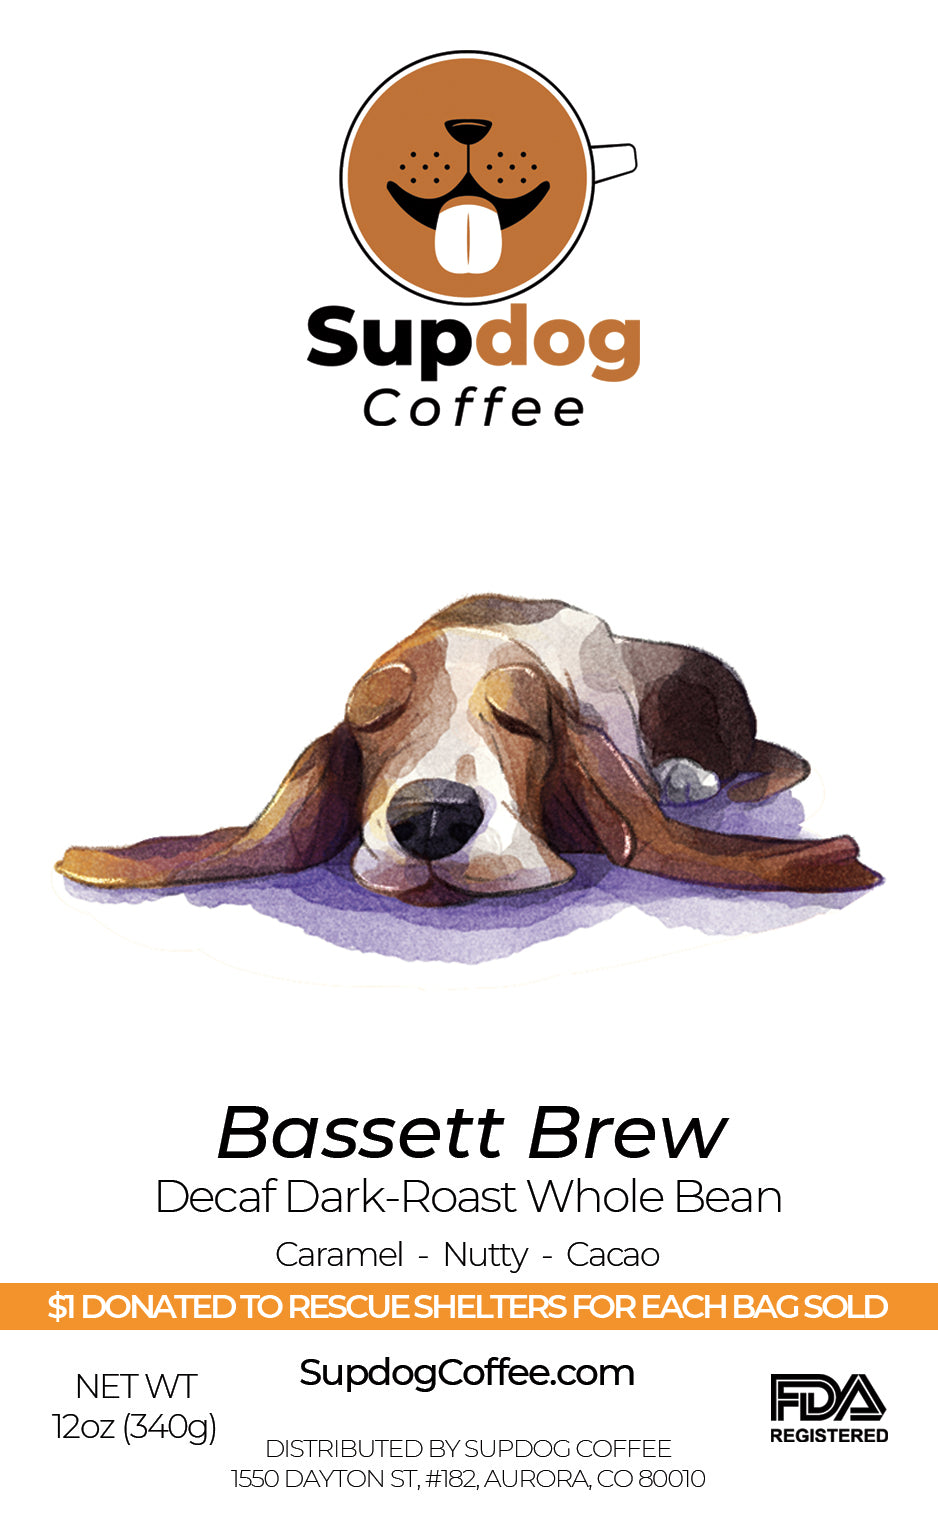 Bassett Brew - South American Dark-Roast, Decaf